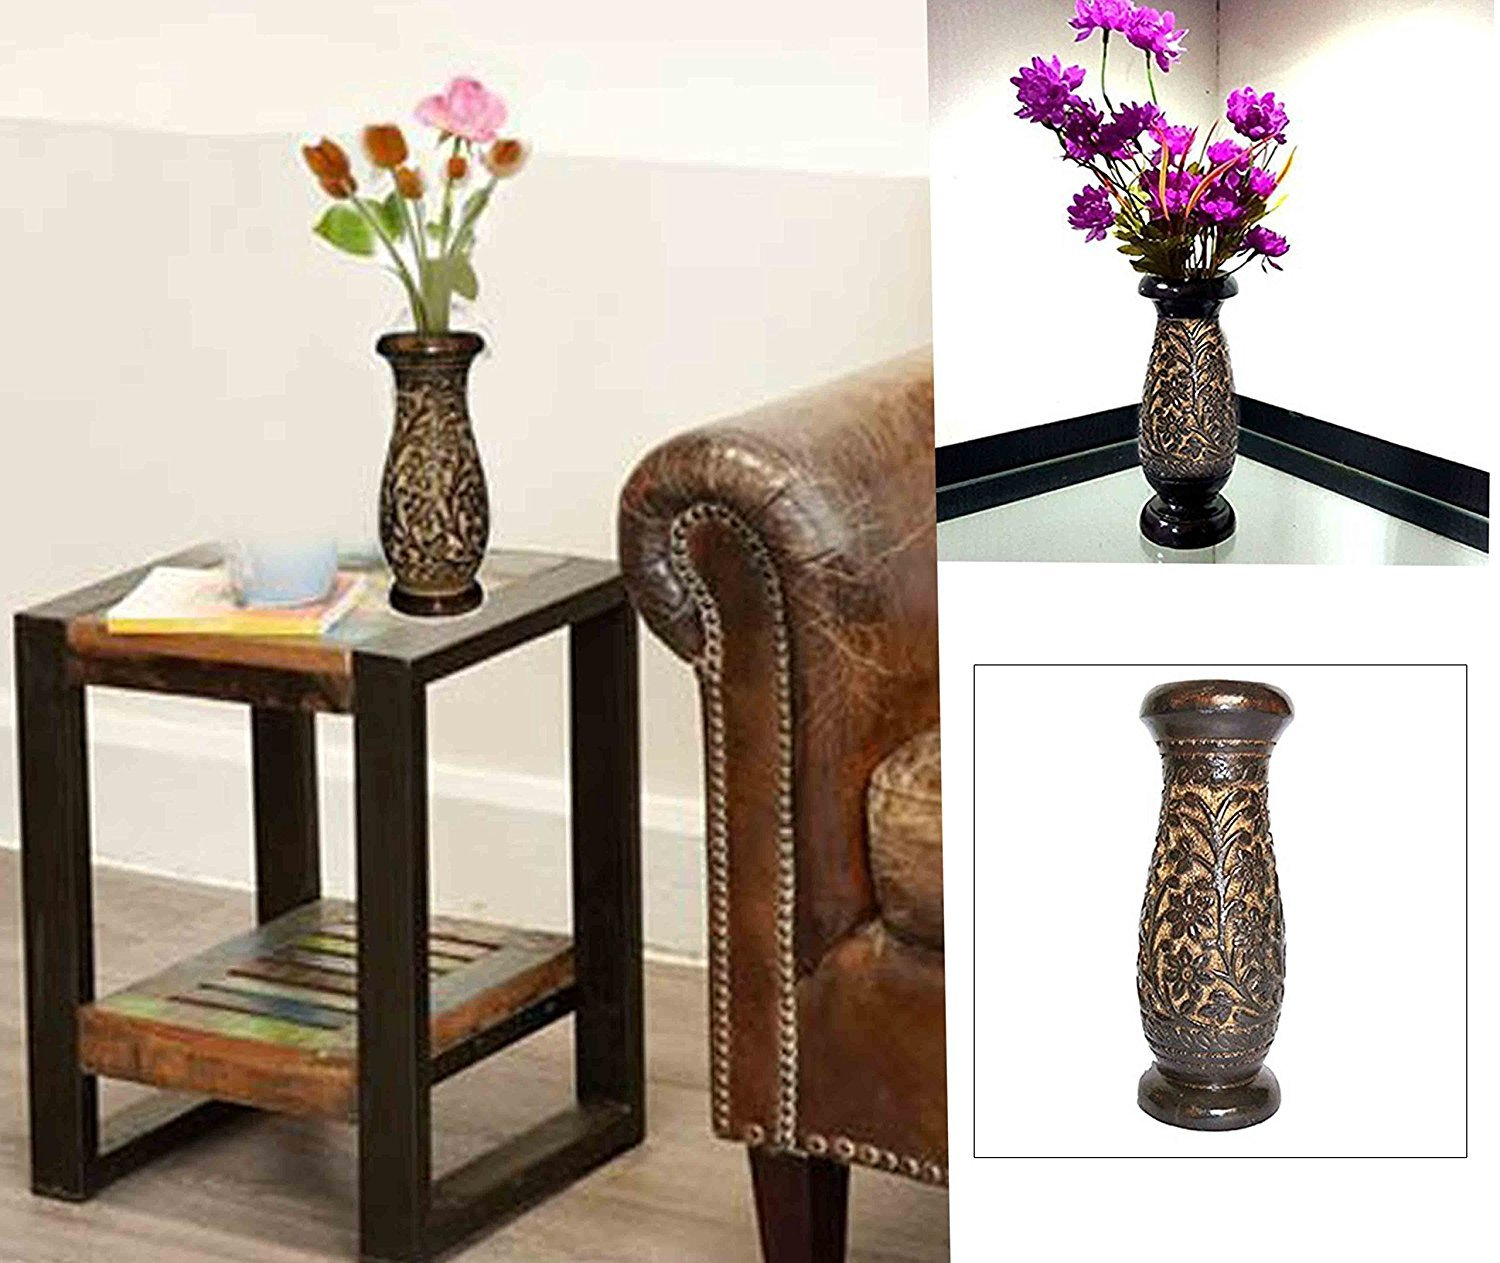 WhopperOnline Wooden Flower Vase Carving Work, Flower Vase Outdoor, Flower Vase For Dining Table, Wooden Handmade Flower Vase, Black Color Beautifully Crafted 8 X 3 Inch